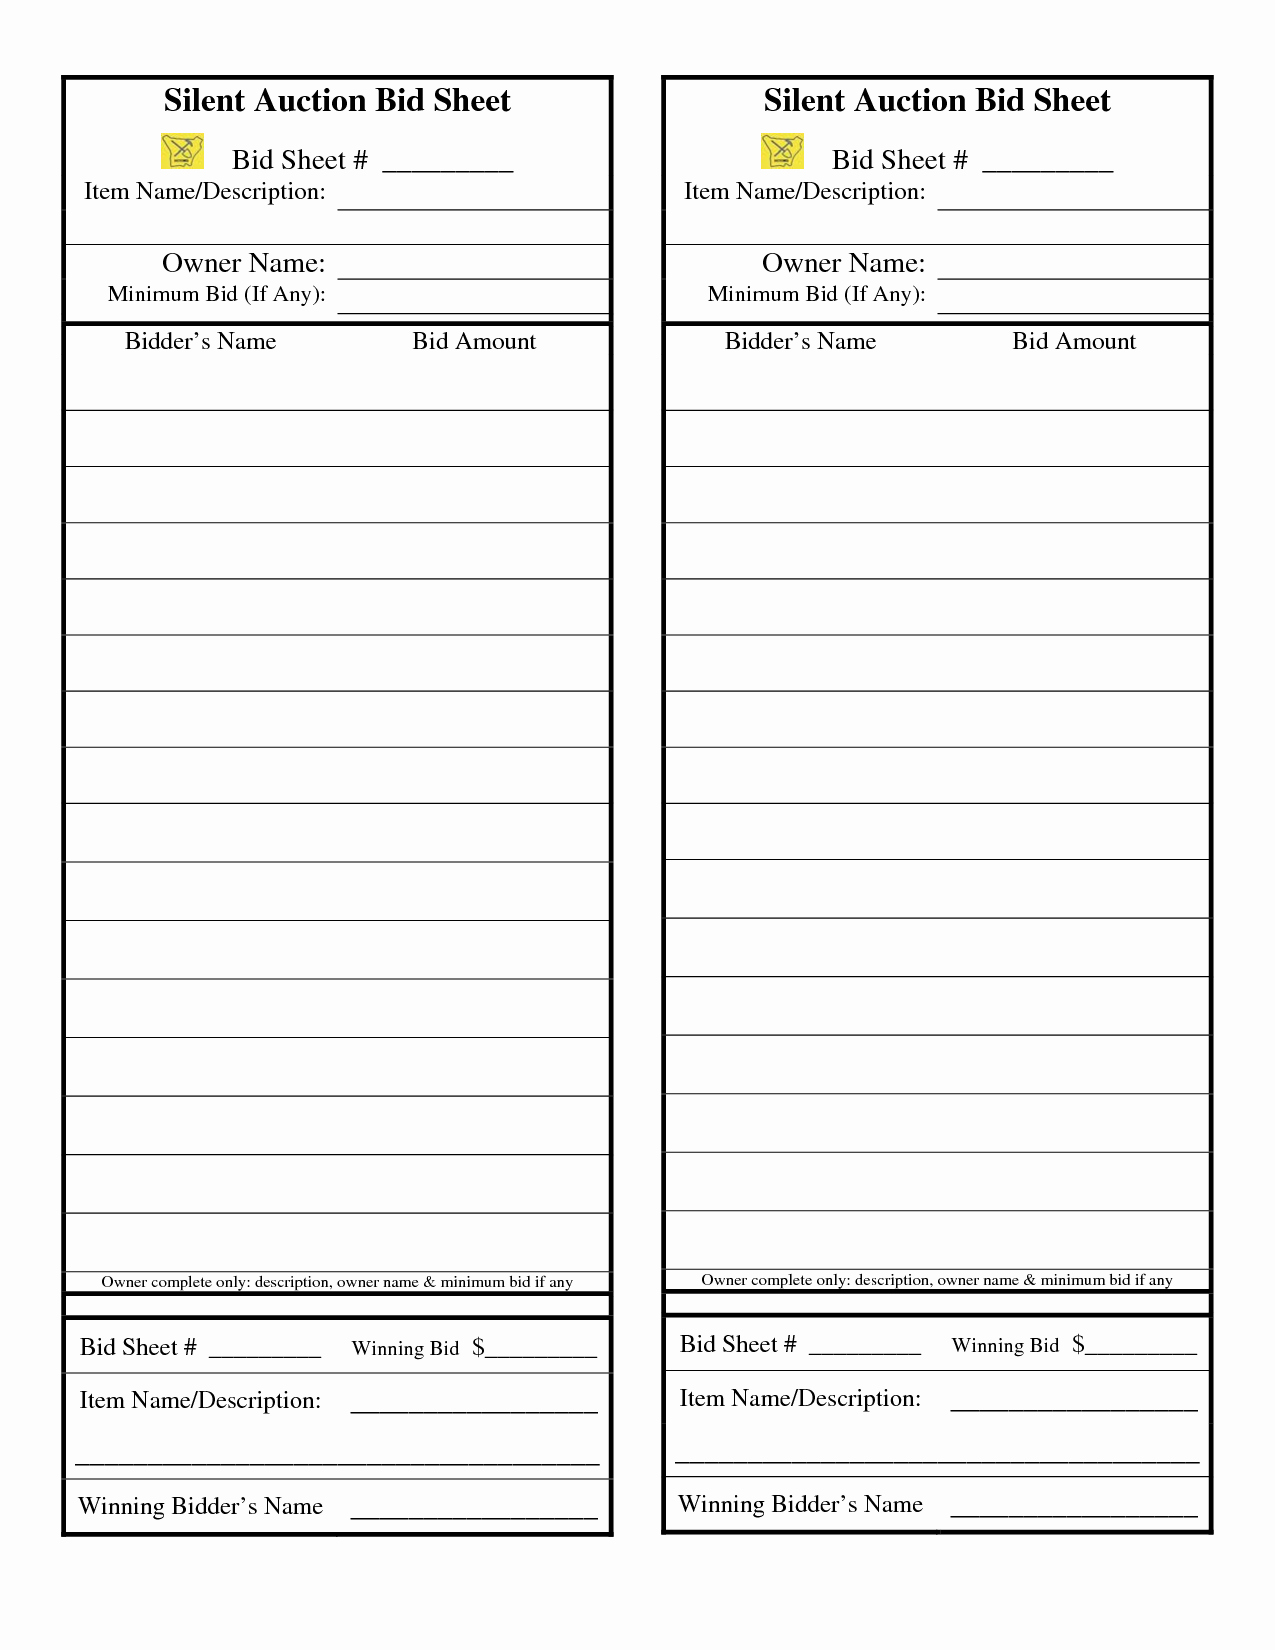 Silent Auction forms Awesome Silent Auction Bid Sheet Google Search